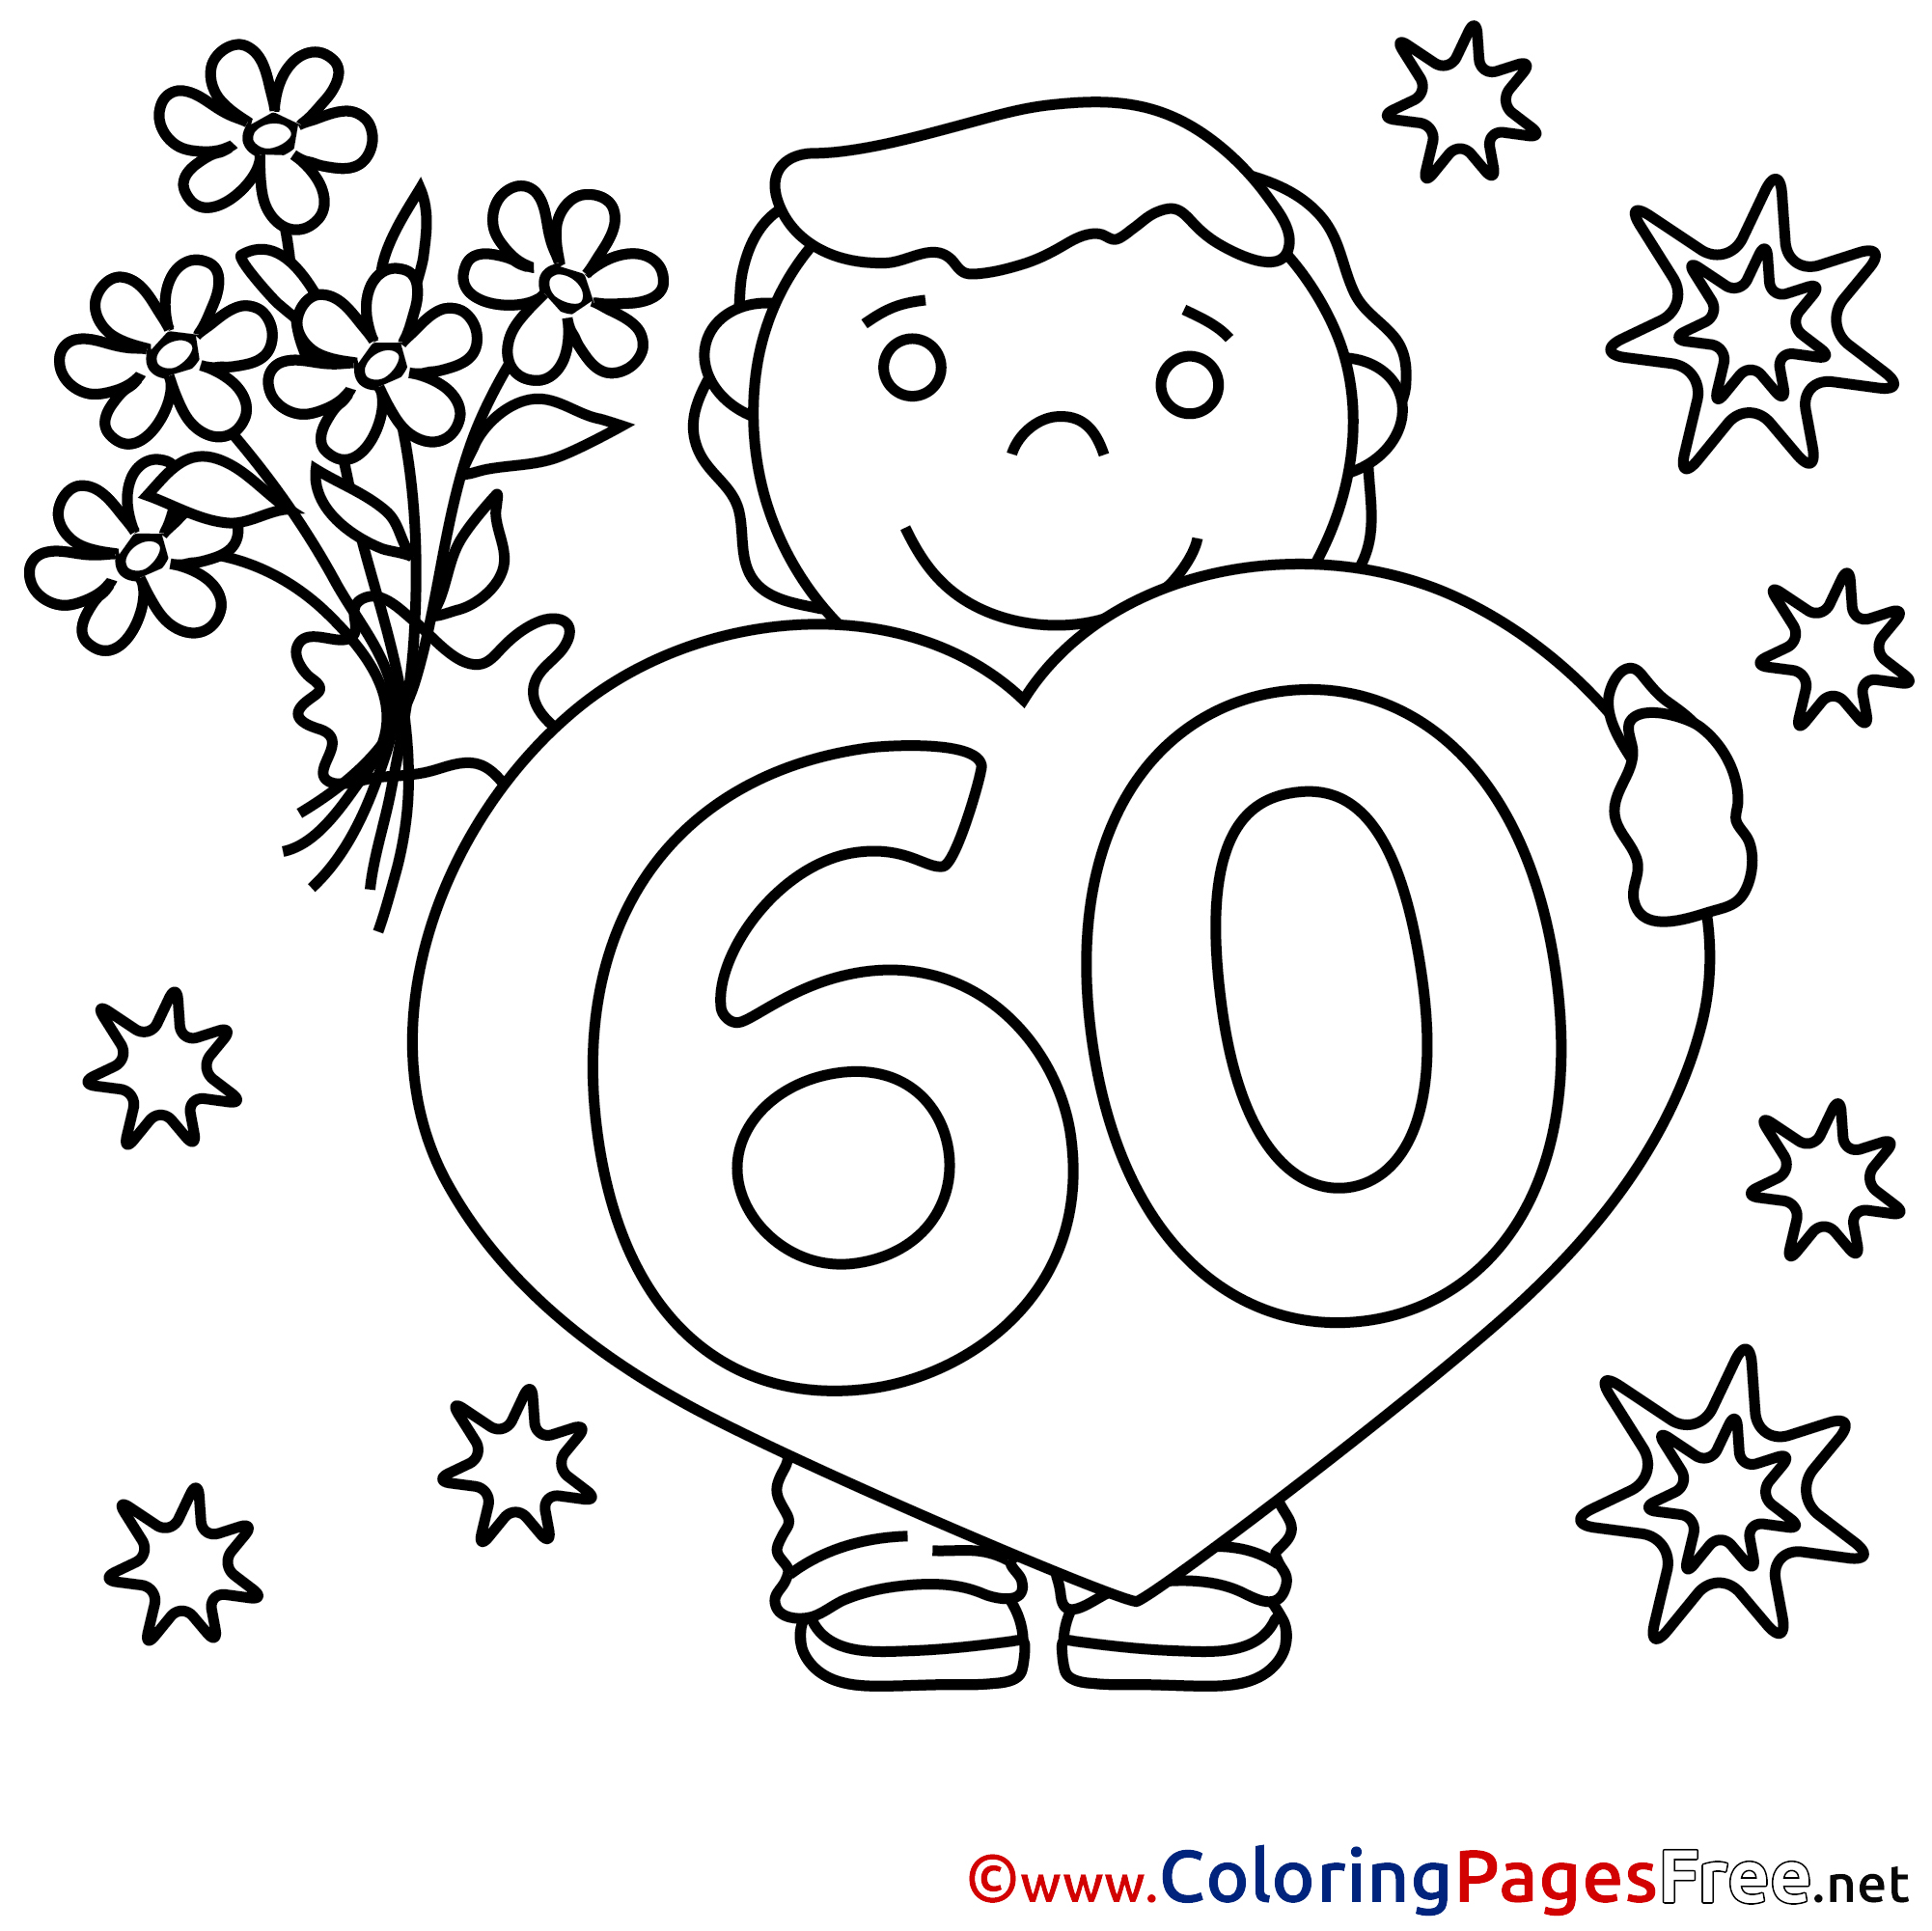 60 Years Bouquet Children Happy Birthday Colouring Page